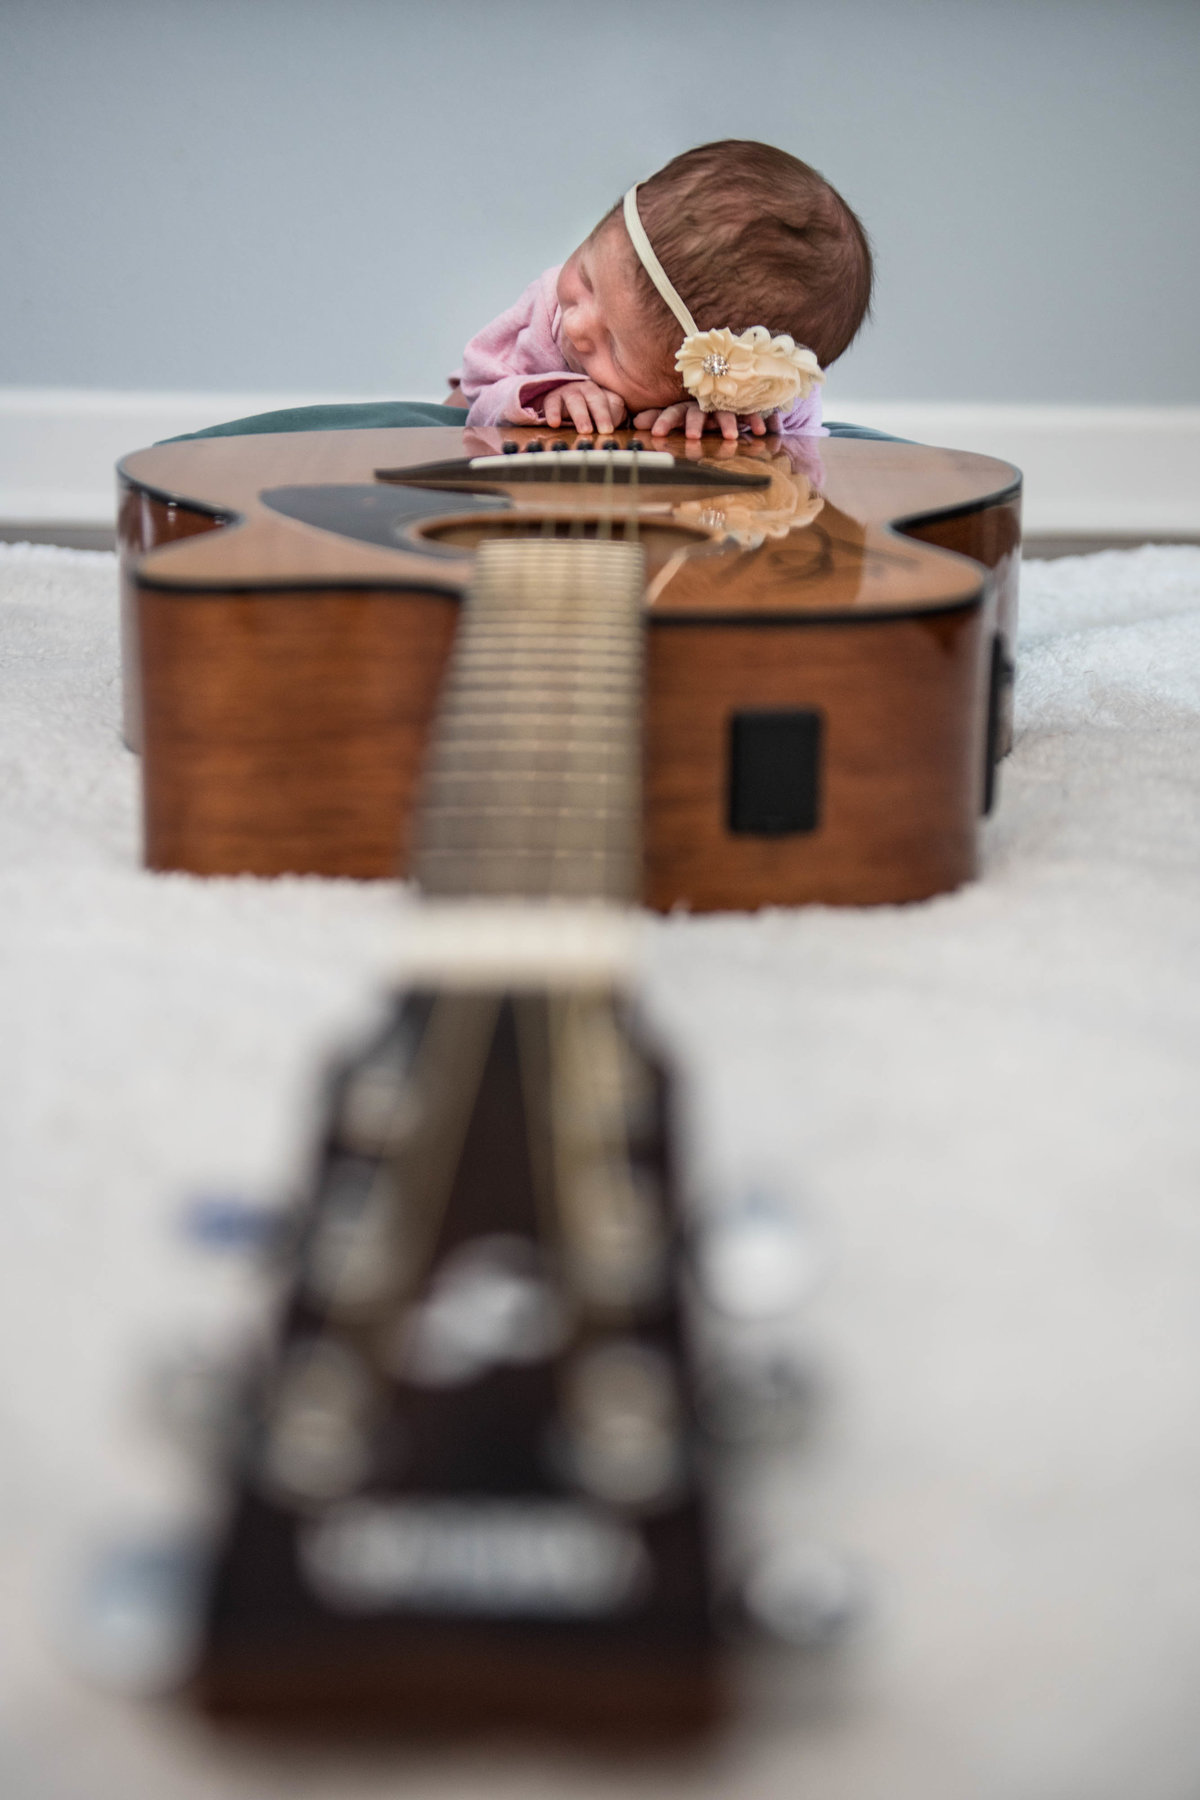 Baby sleeping on a guitar